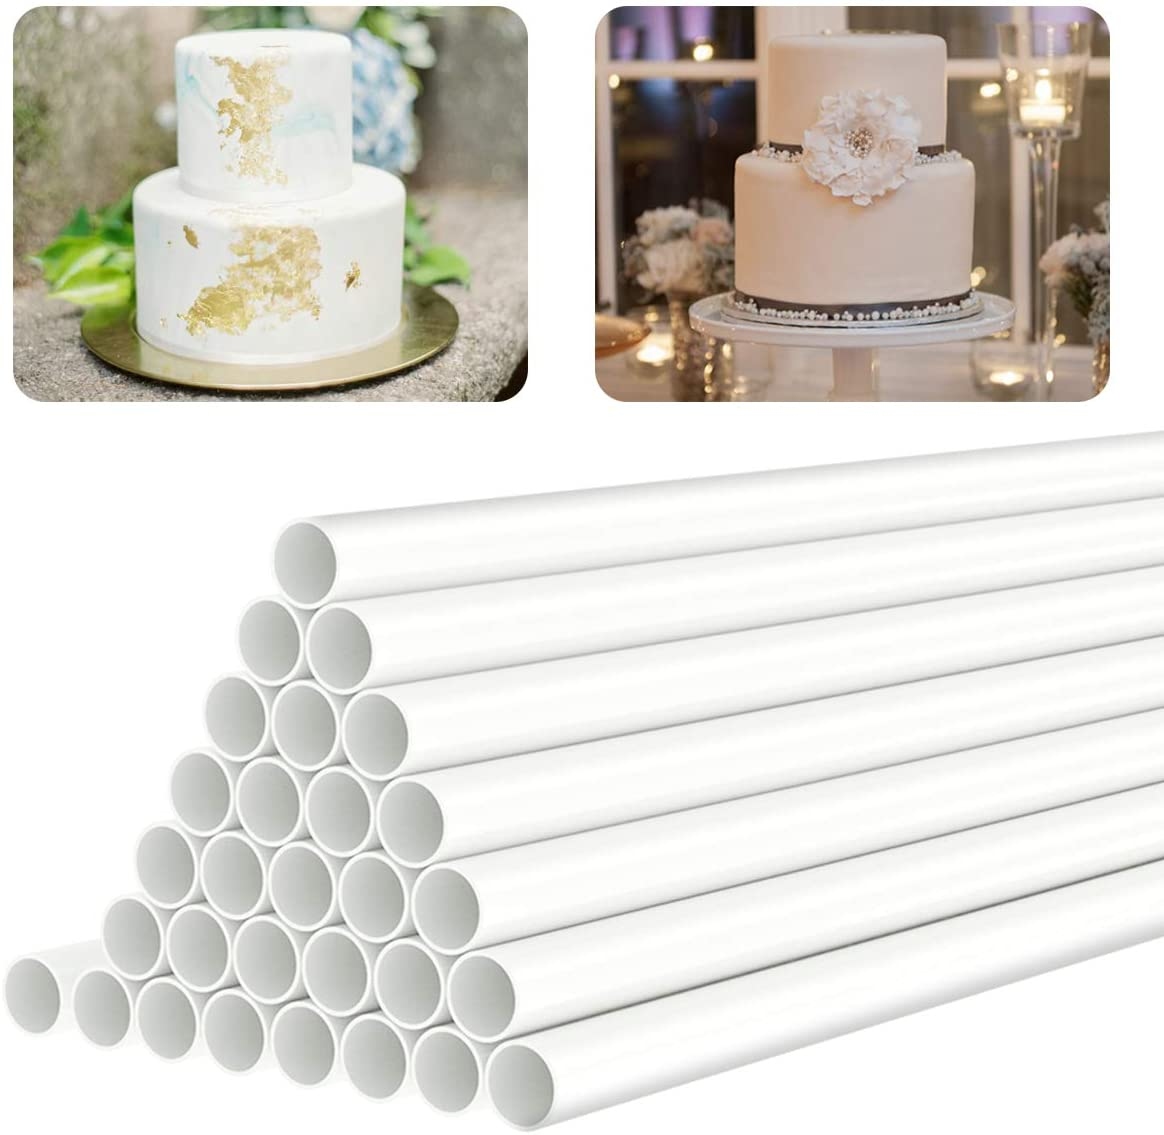 White Plastic Cake Dowel Rods for Tiered Cake Construction and Stacking Supporting Cake Round Dowels Straws with 0.4 Inch Diameter (9.5 Inch)